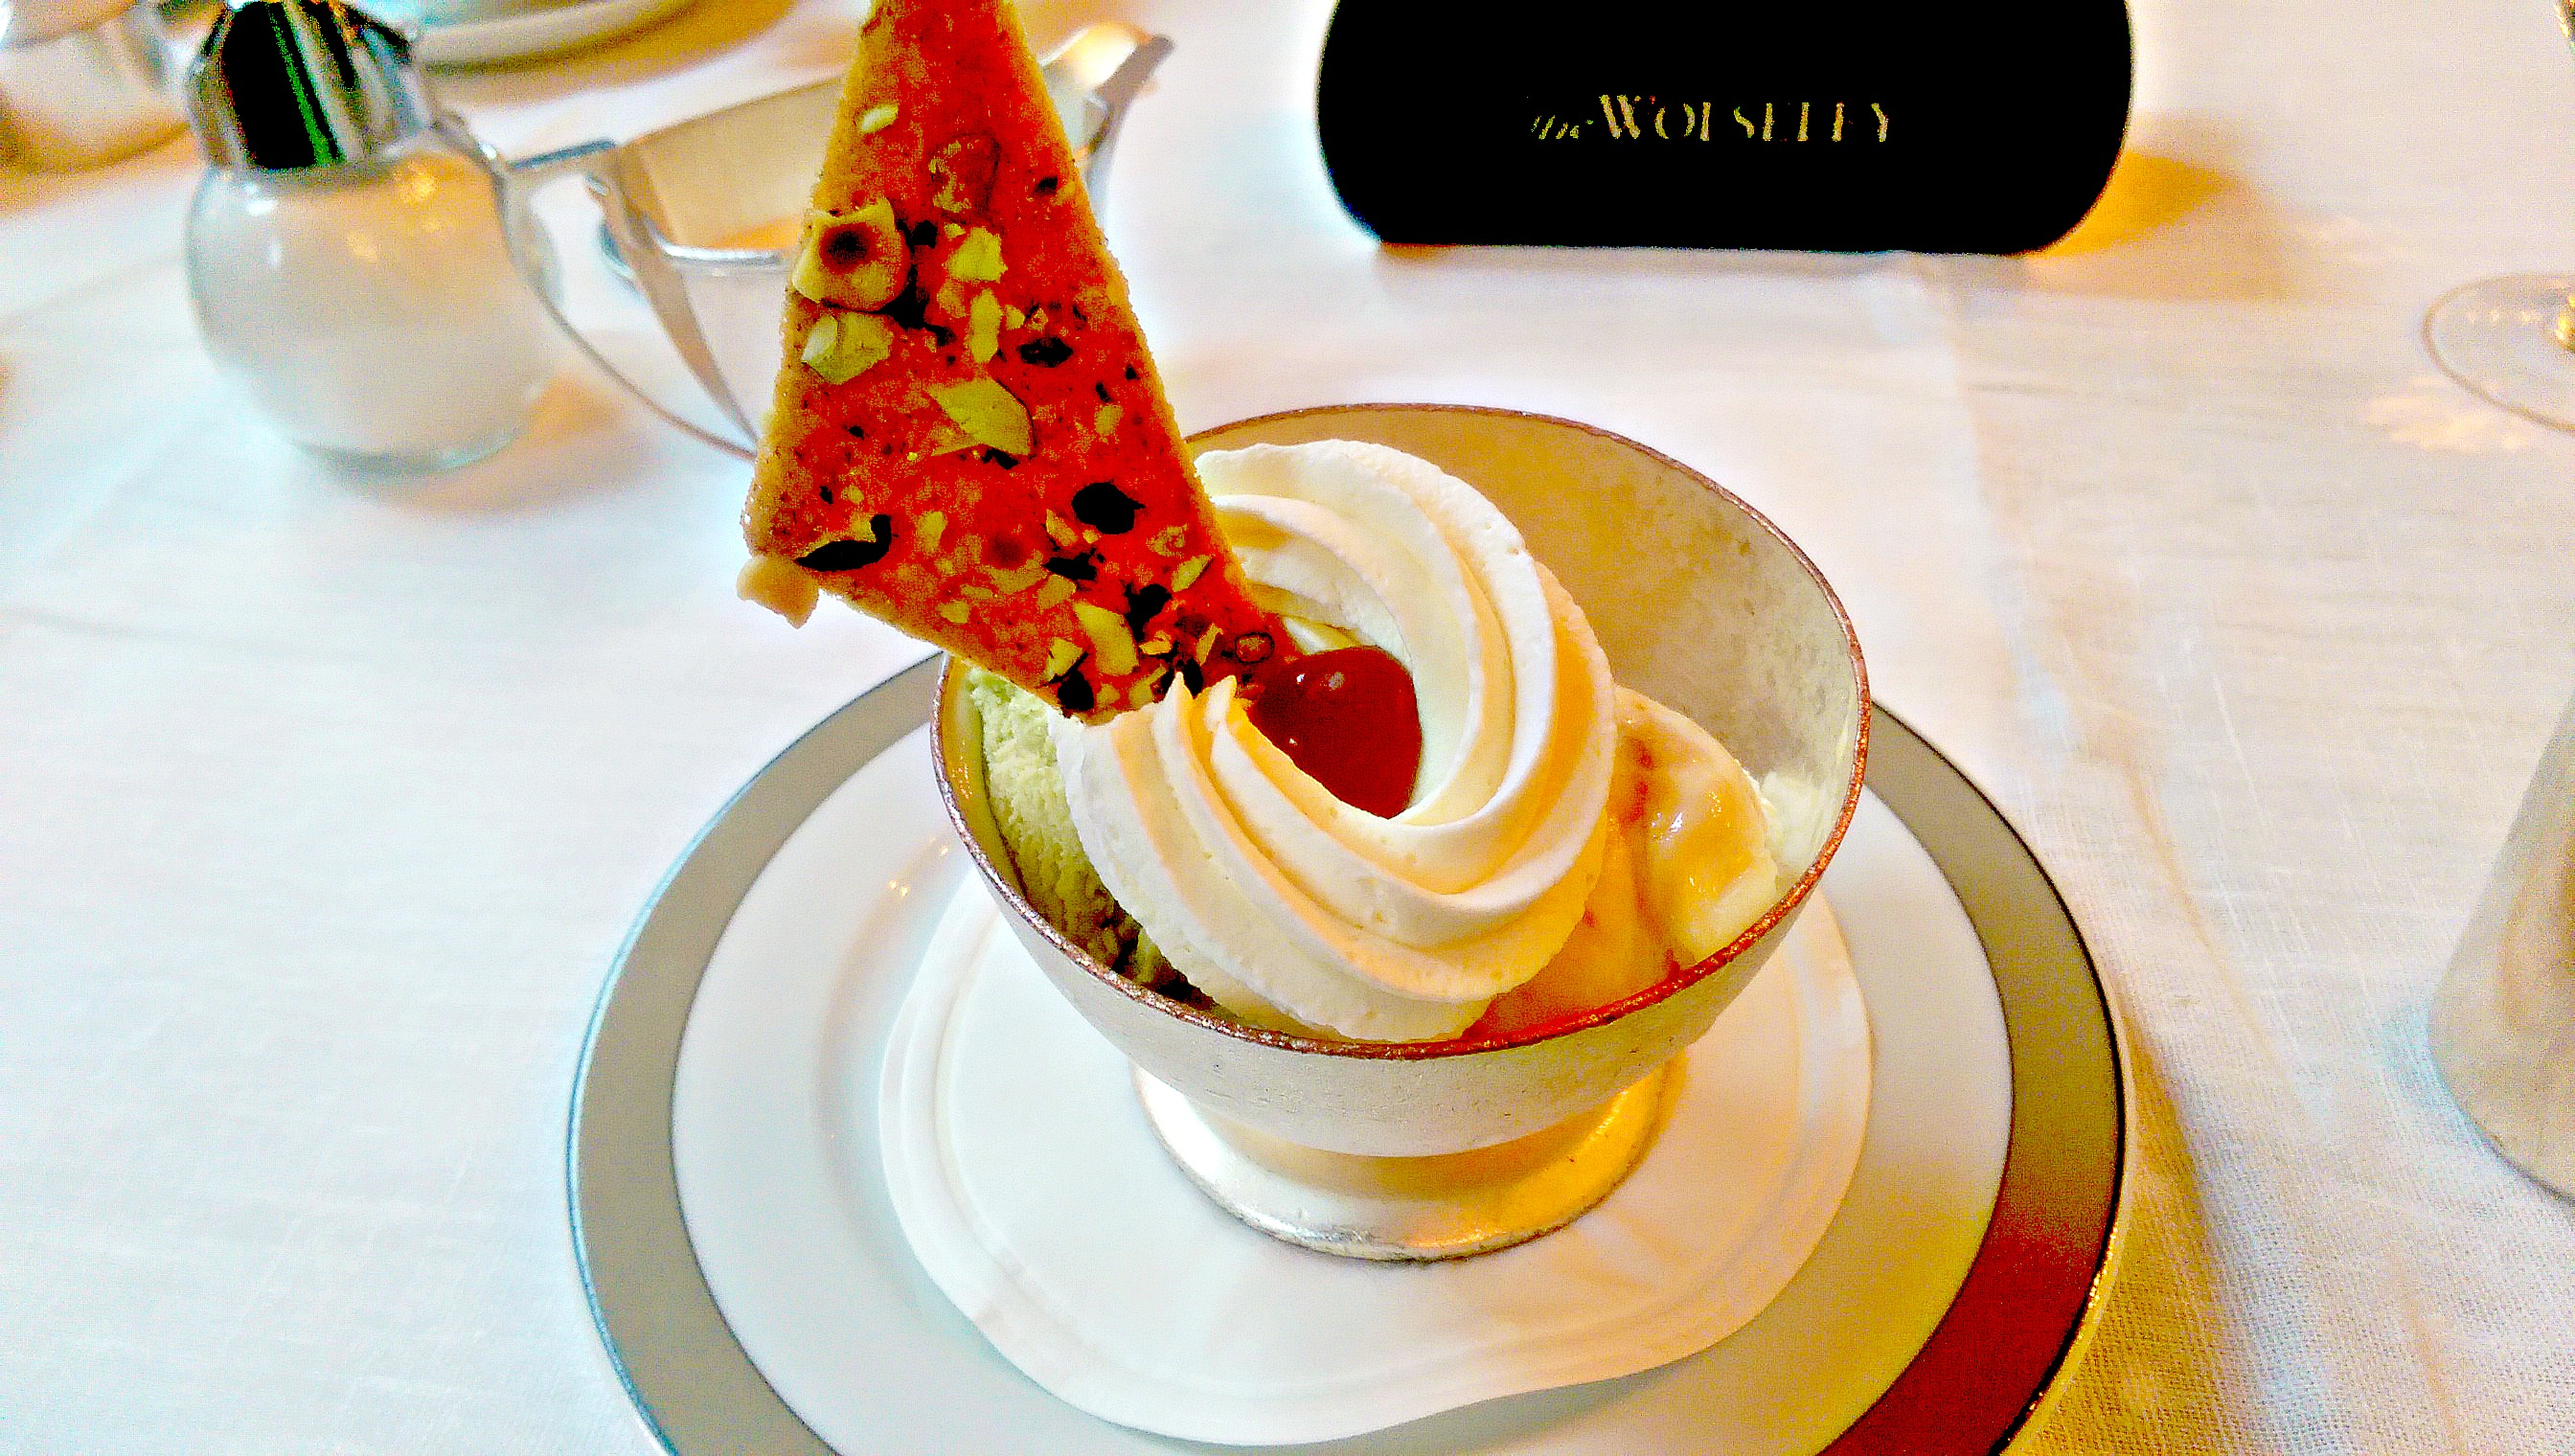 The Wolseley ice cream2